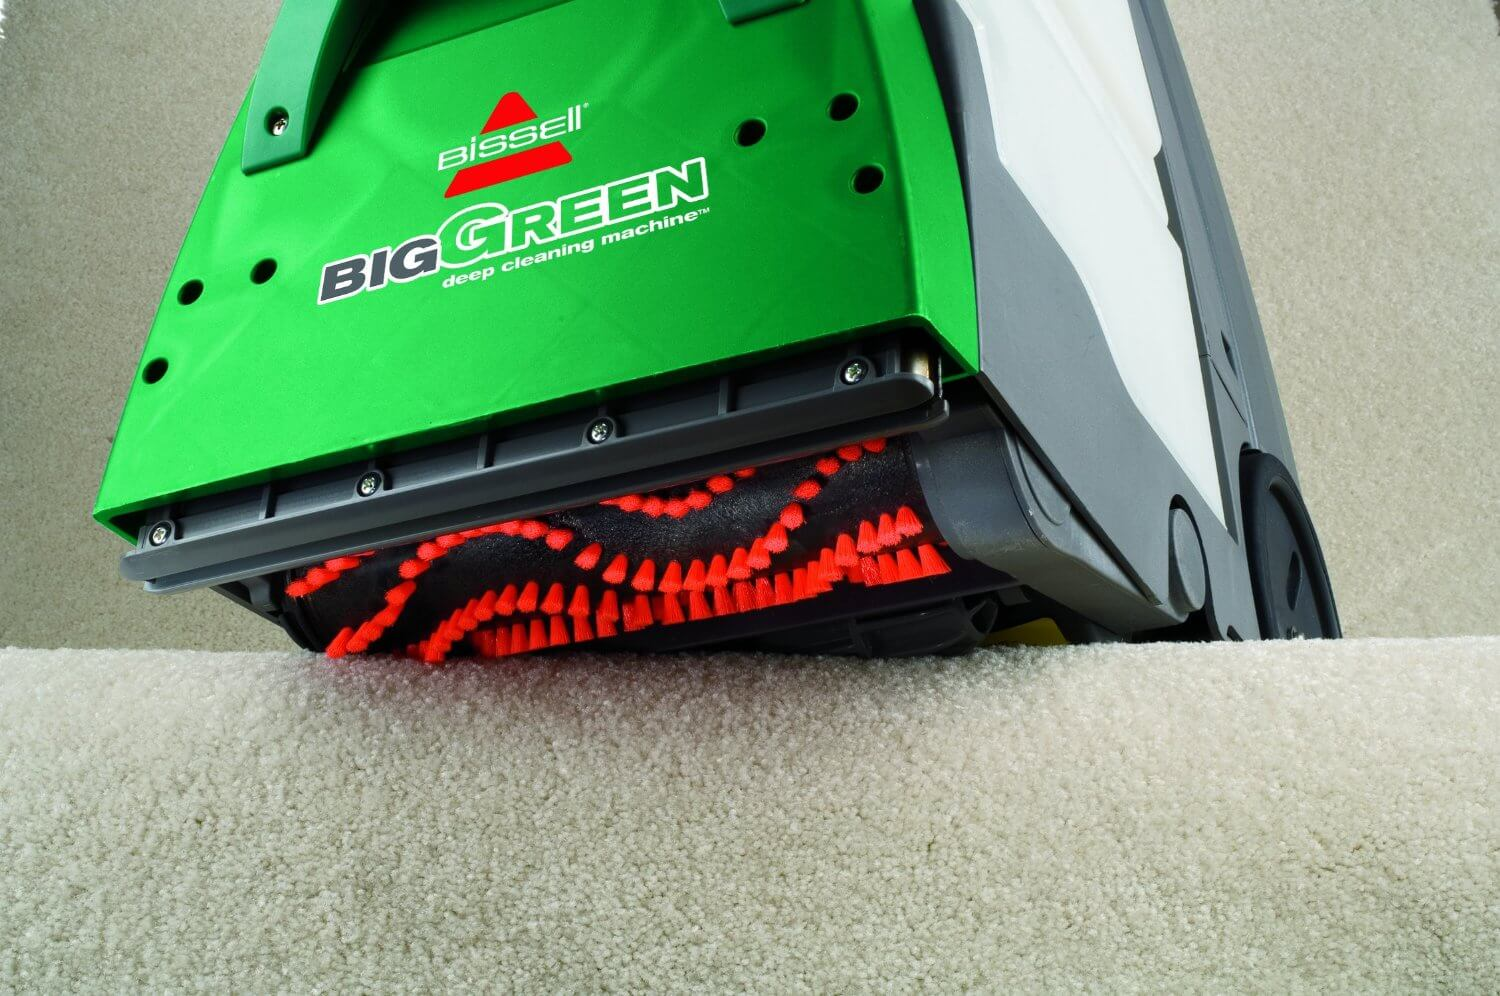 Bissell Big Green Deep Cleaning Machine 86t3 Review